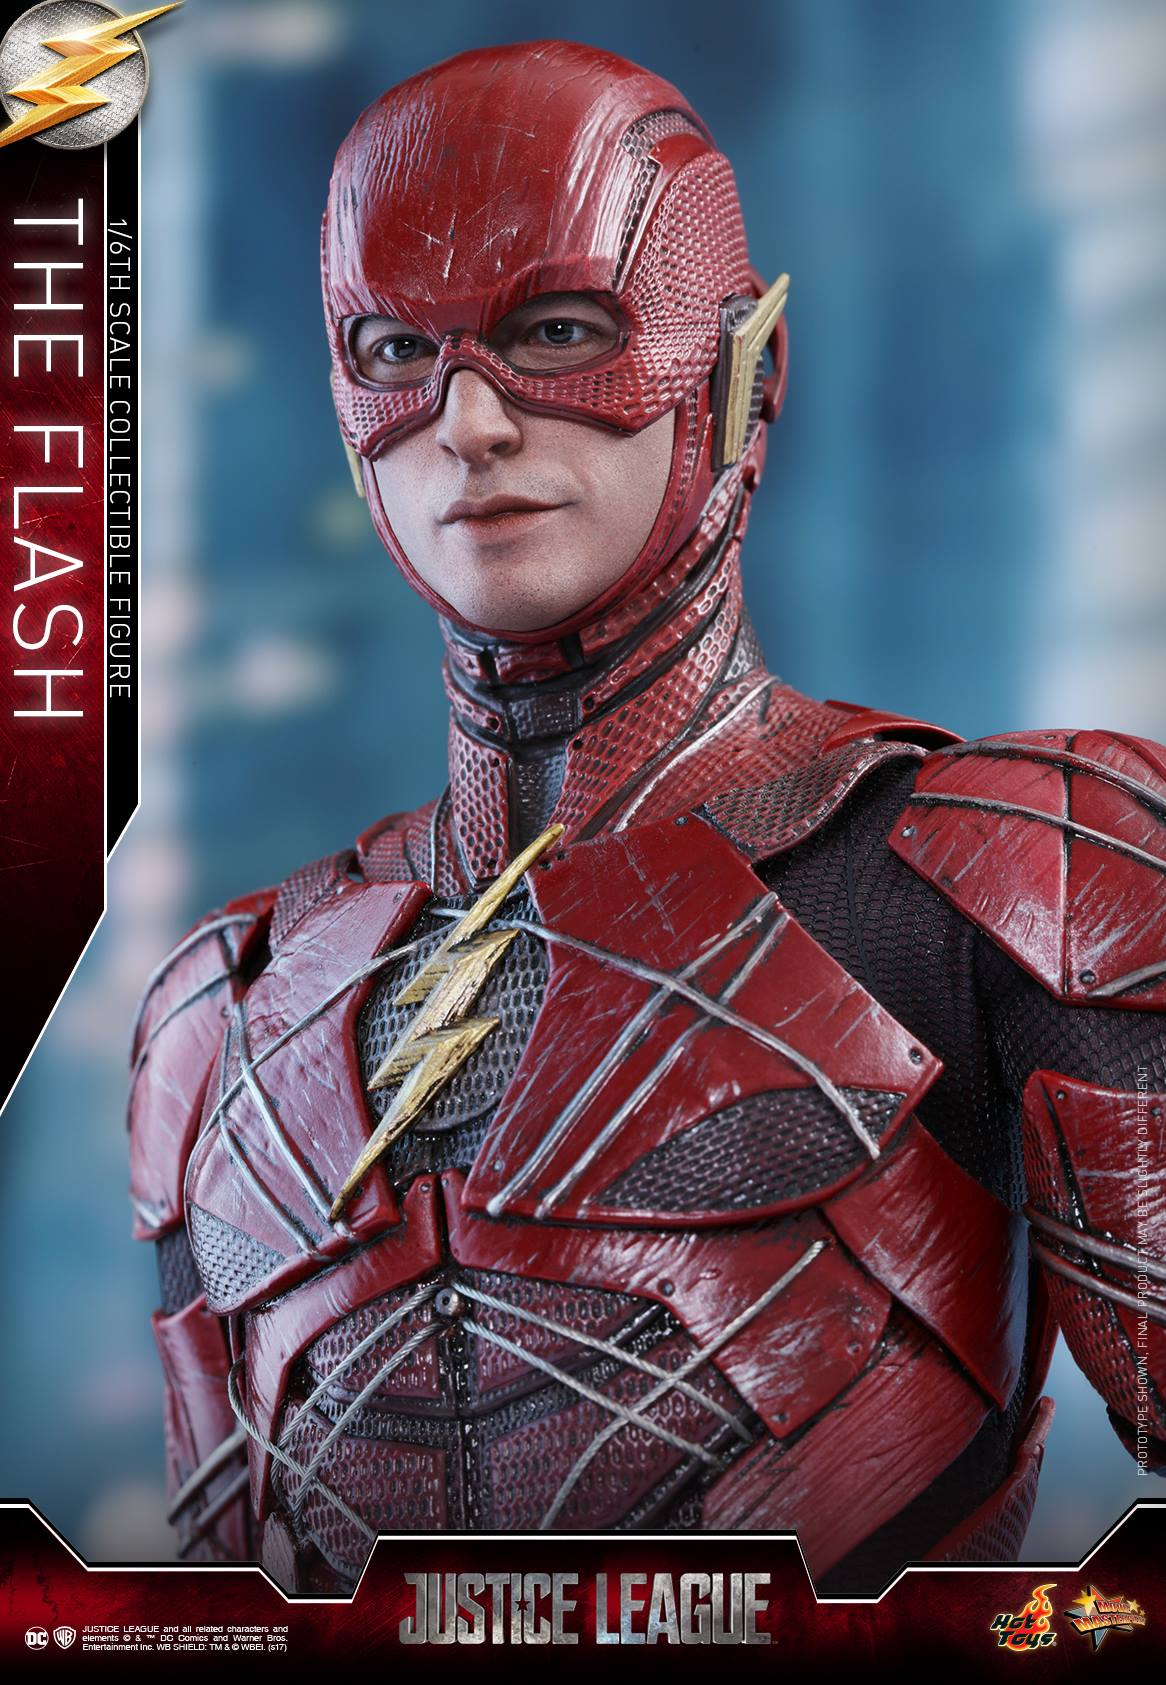 Hot-Toys-Justice-League-The-Flash-013